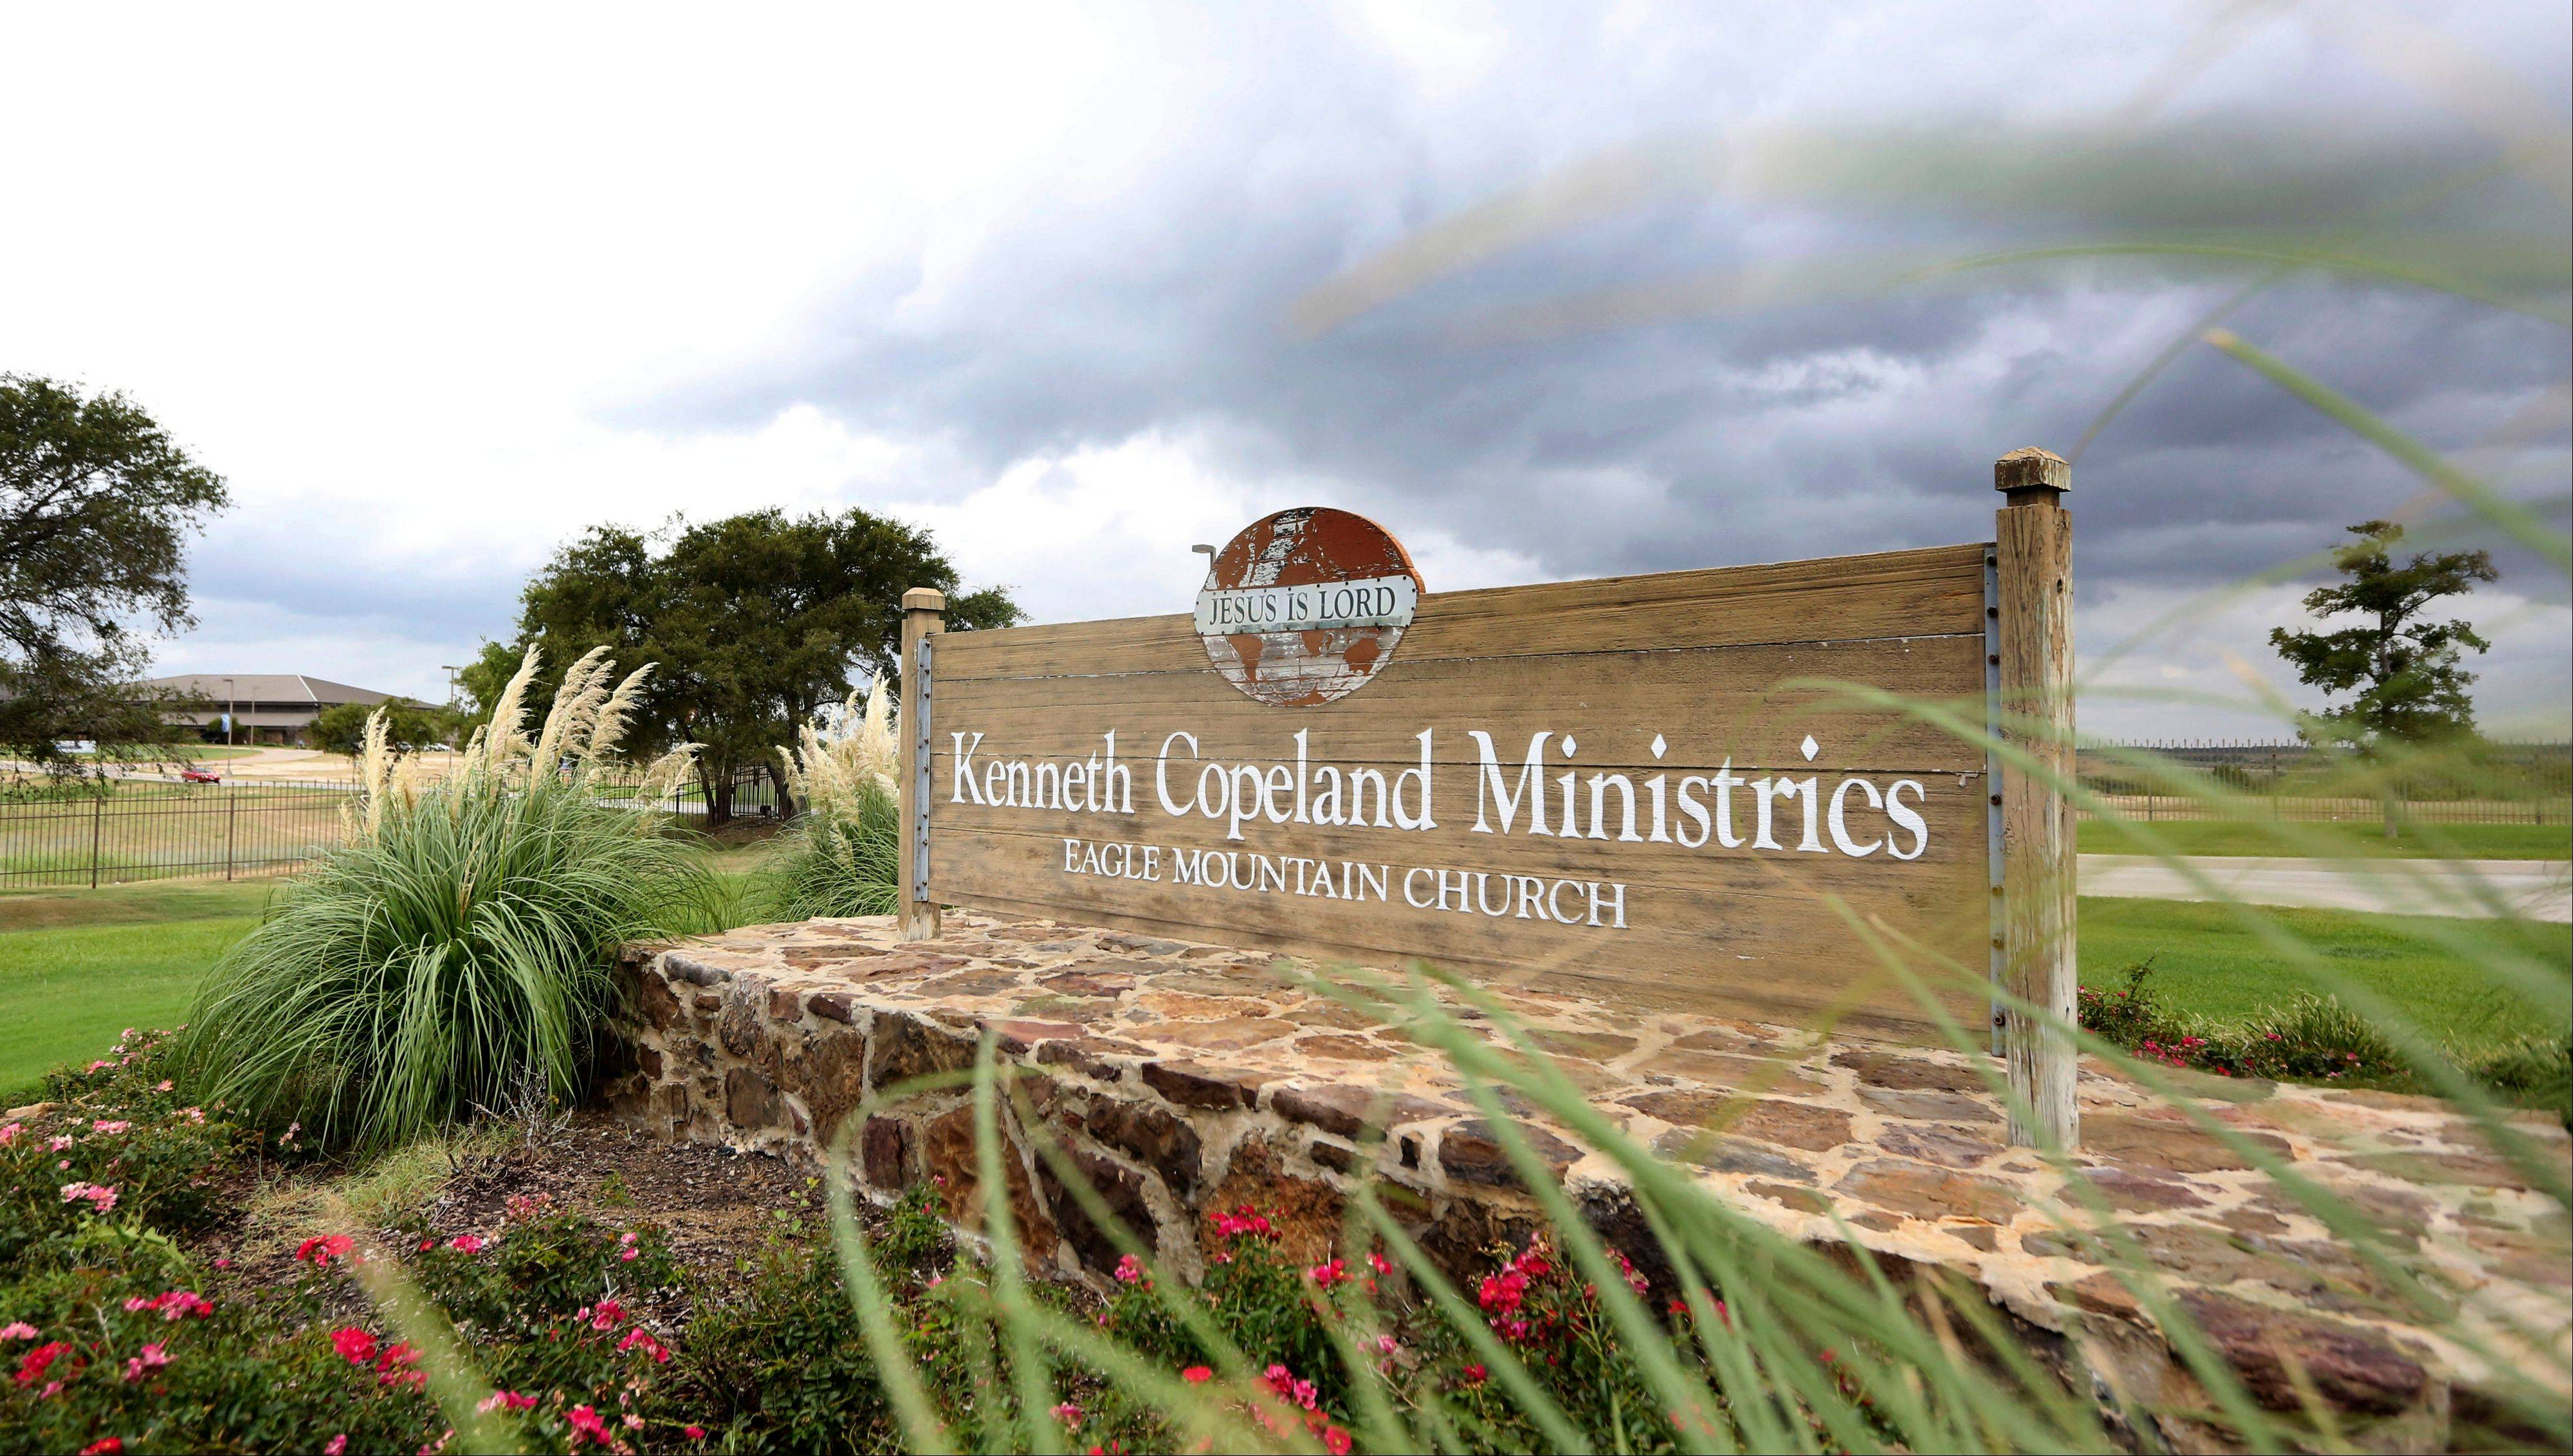 A sign sits Tuesday at the entrance of the Kenneth Copeland Ministries Eagle Mountain Church, in Newark, Texas. The Texas megachurch is linked to at least 21 cases of measles and has been trying to contain the outbreak by hosting vaccination clinics, officials said.